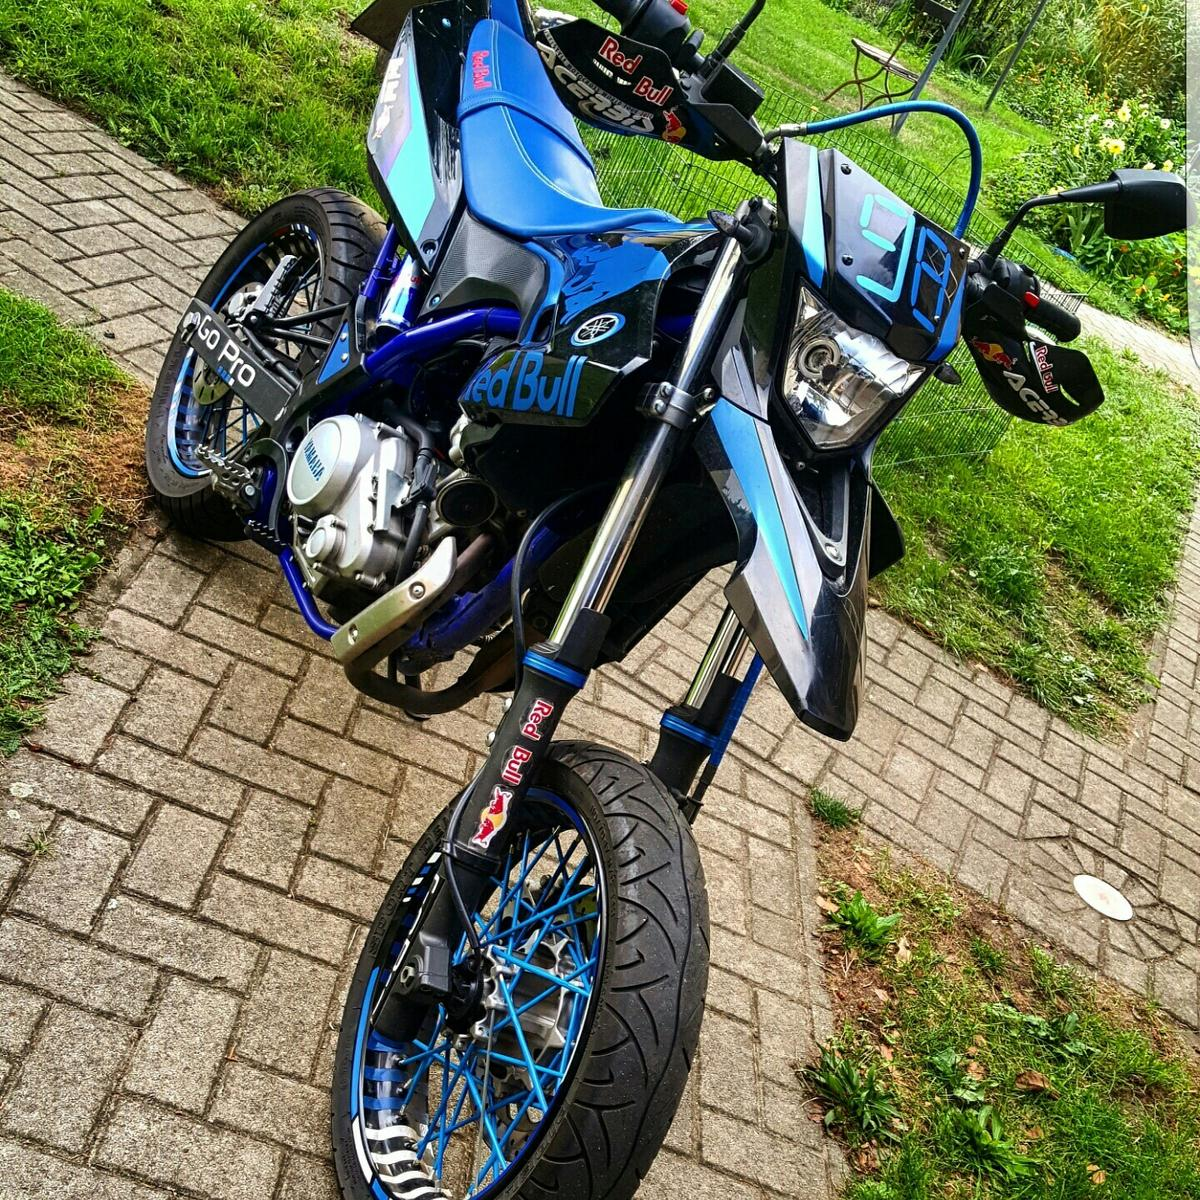 yamaha wr 125 x red bull top zustand in 15848 beeskow for 3 for sale shpock. Black Bedroom Furniture Sets. Home Design Ideas